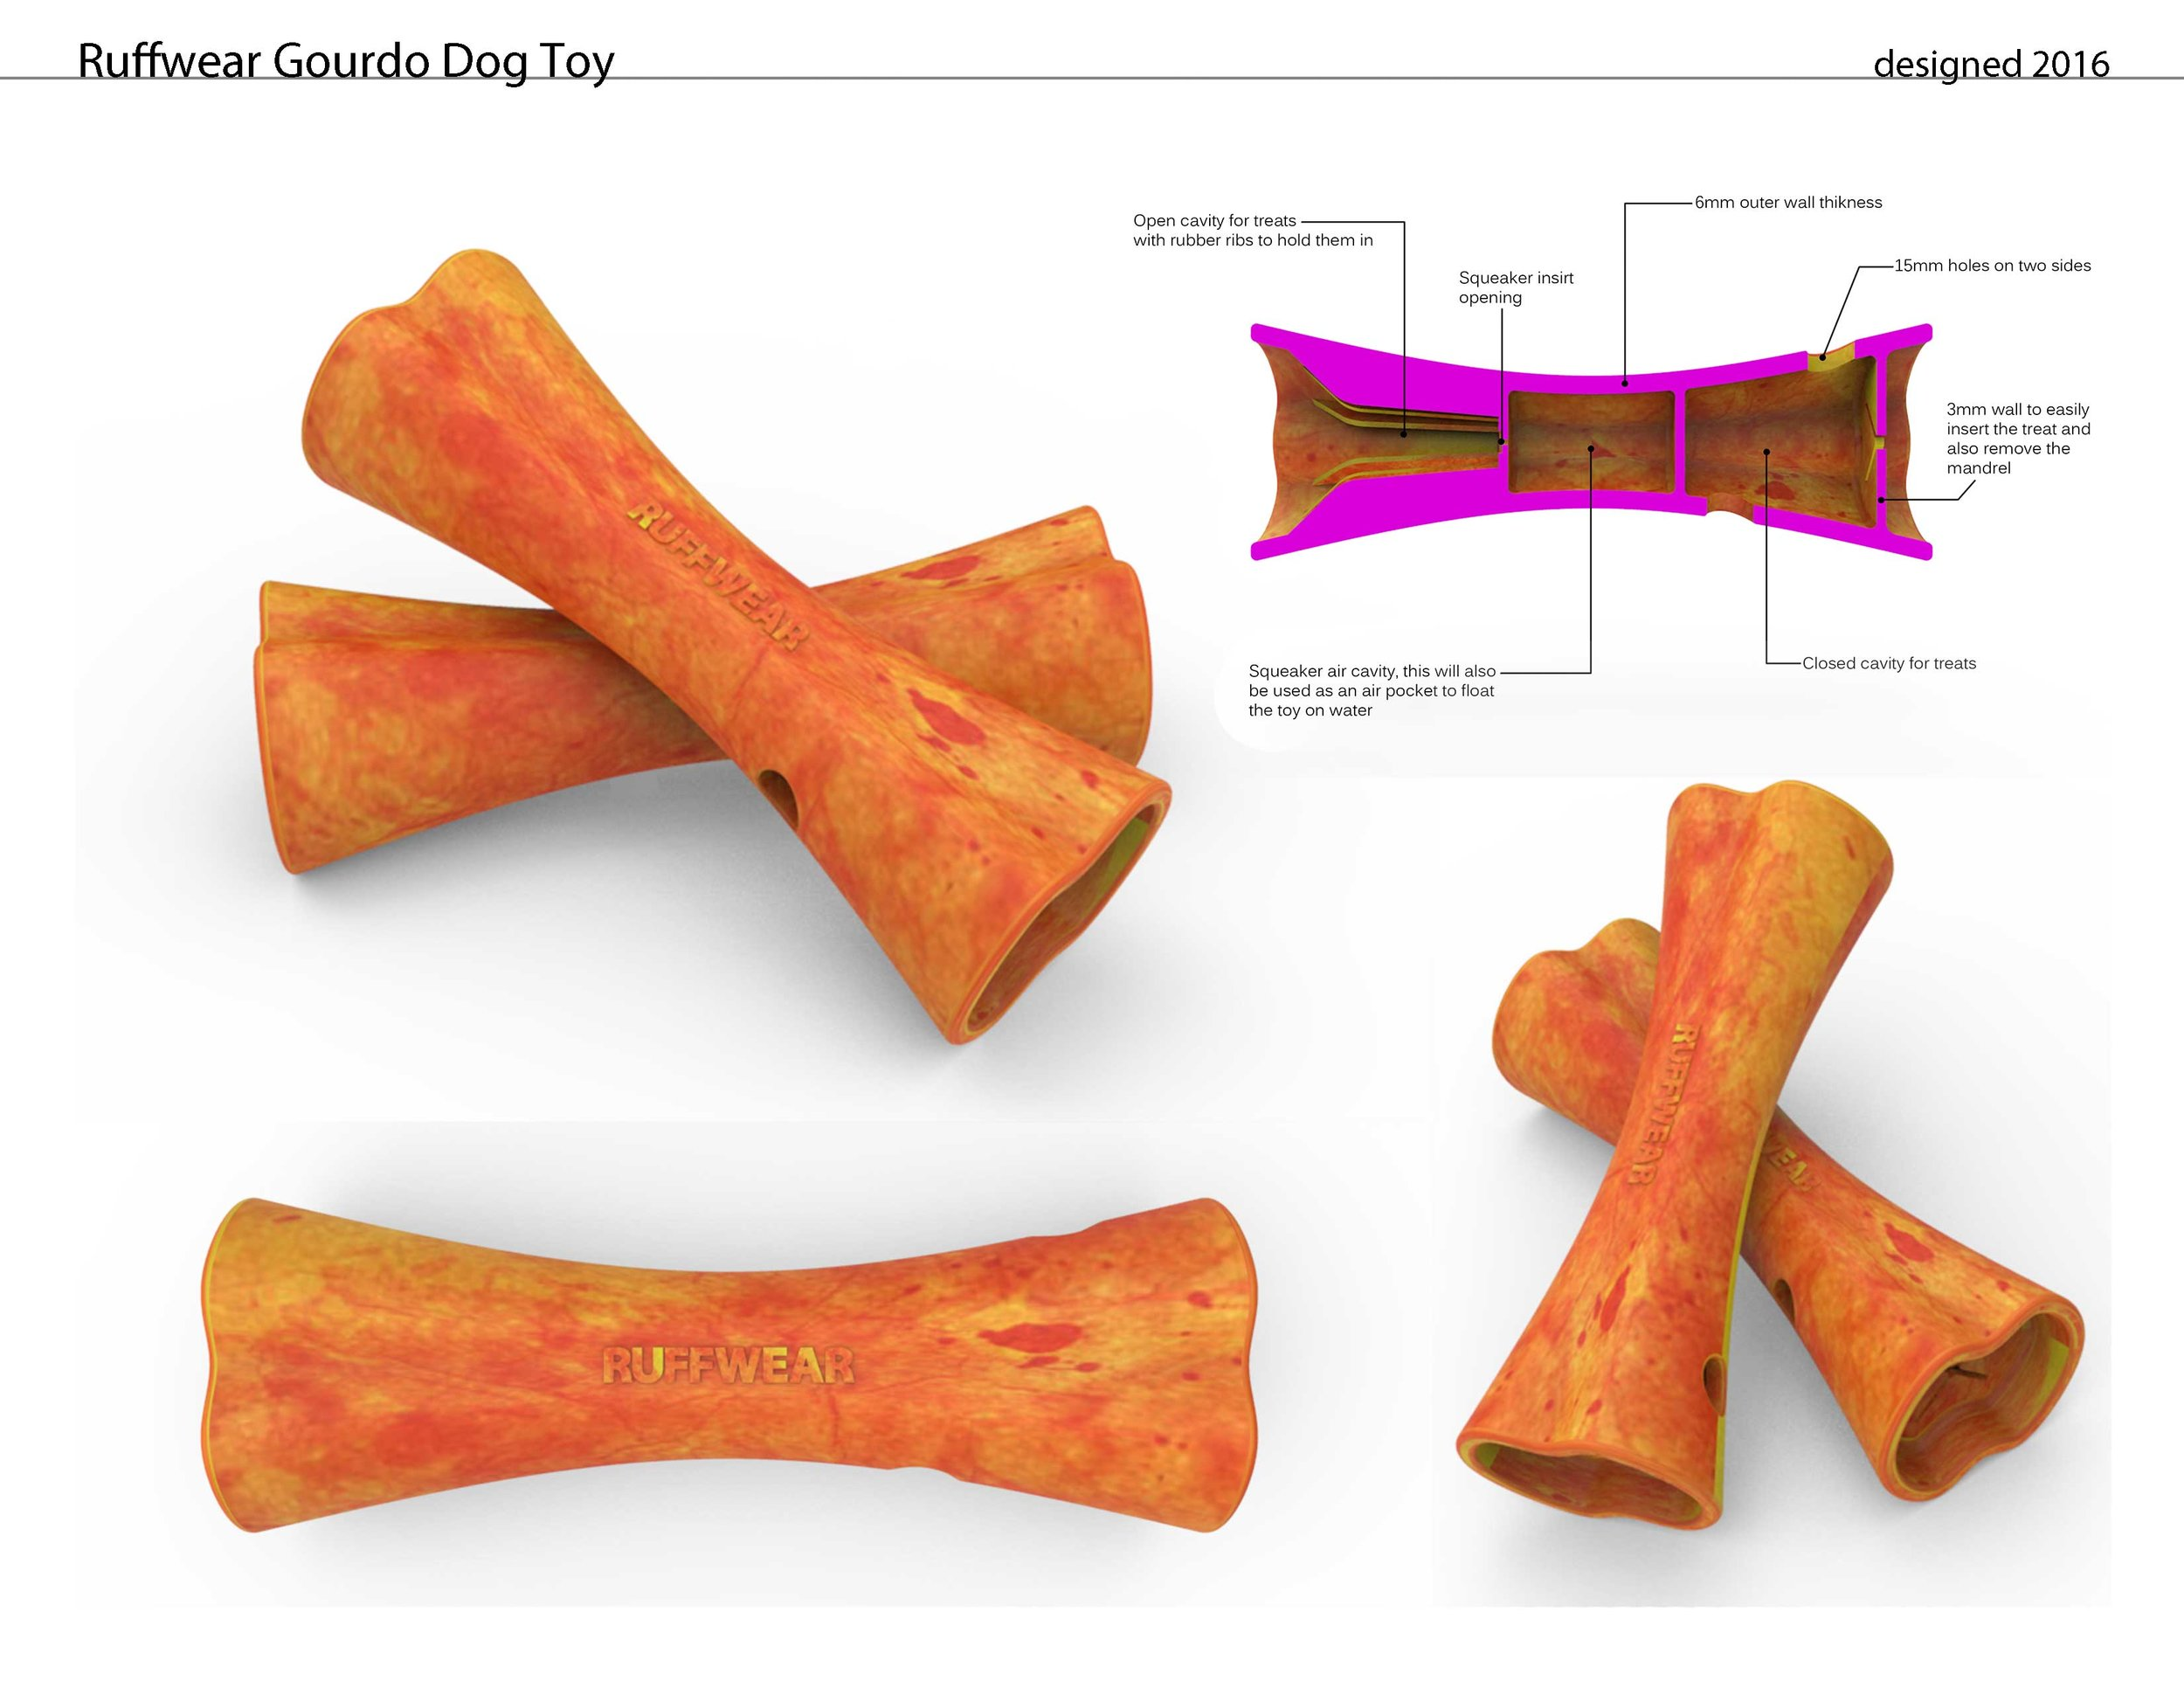 Ruffwear-Gourdo-Dog-Toy.jpg